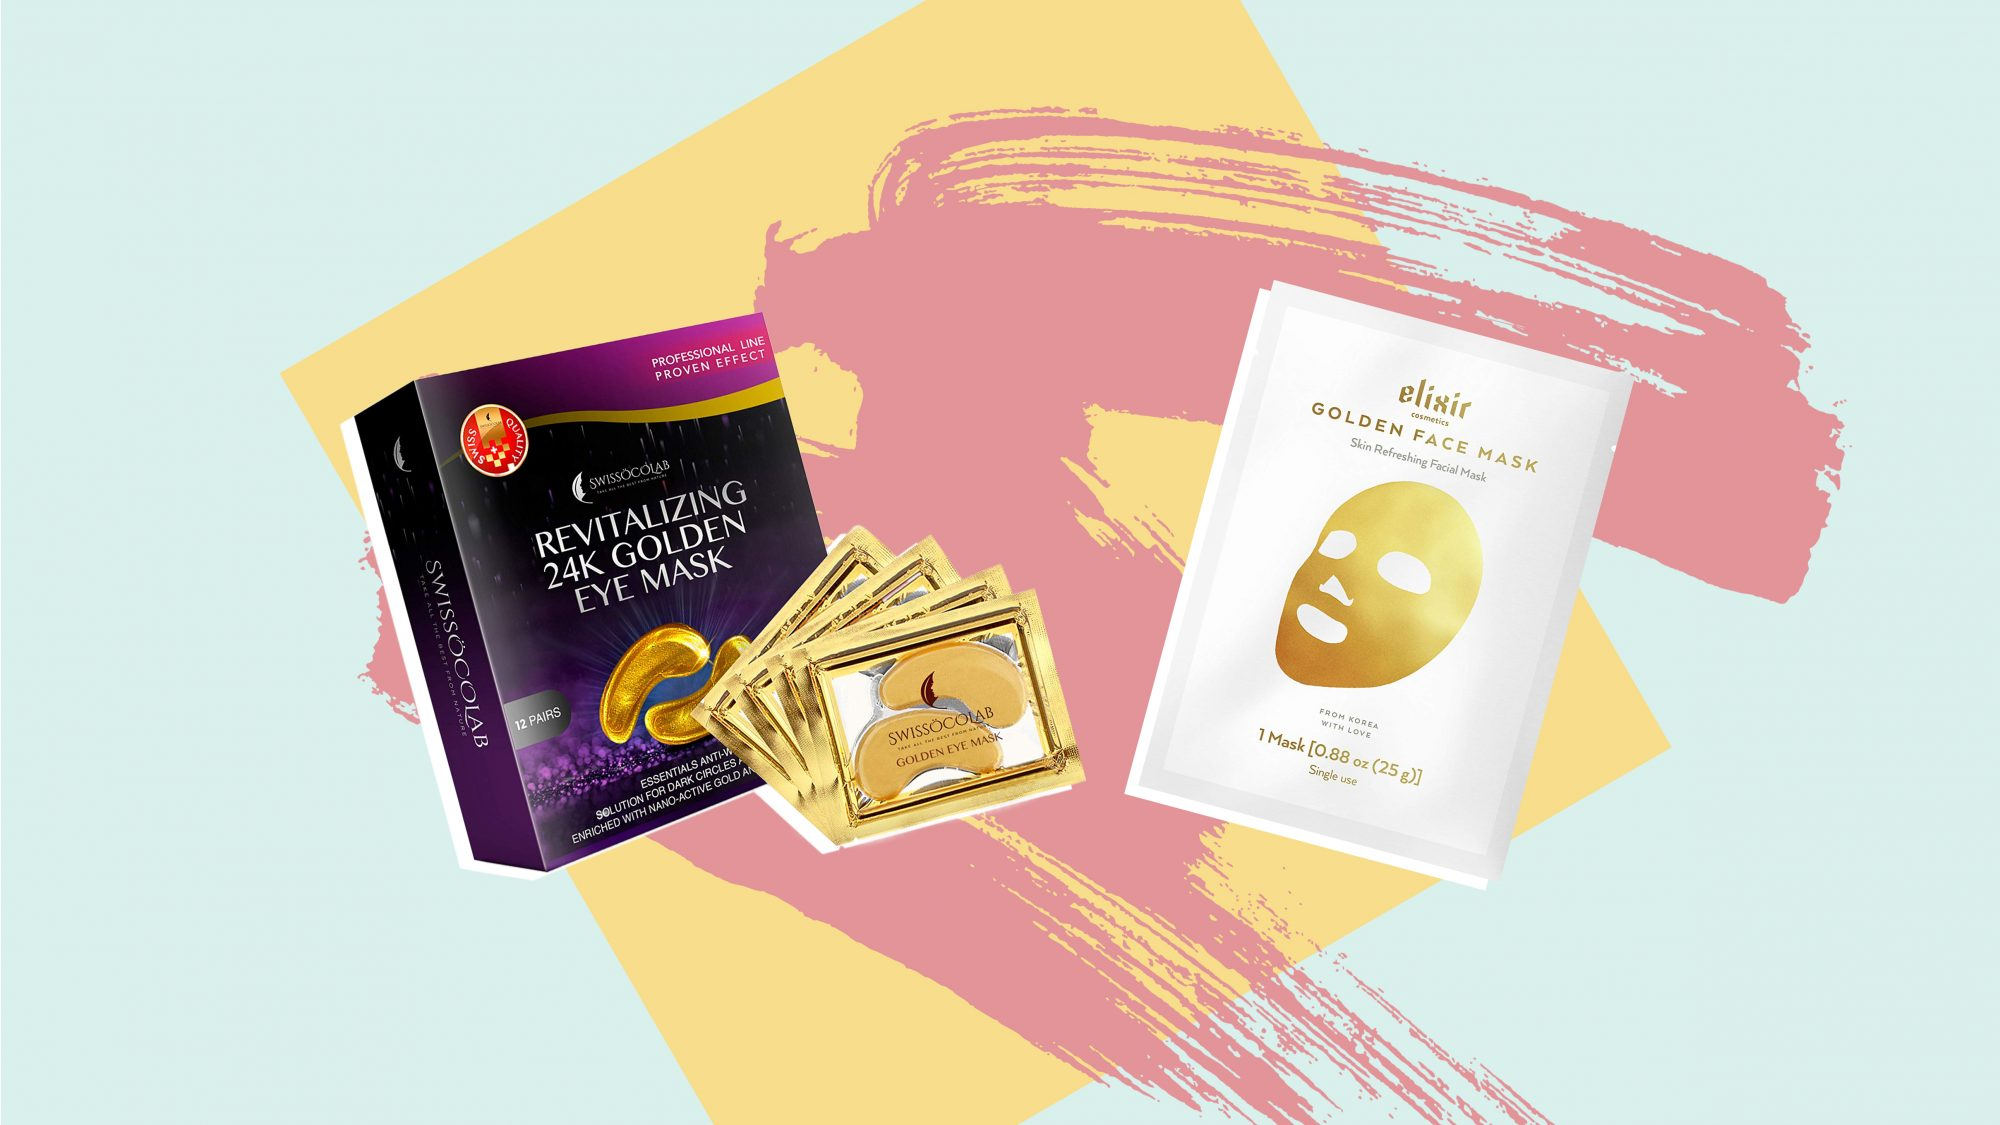 Elixir Cosmetics Gold Korean Face Mask - Moisturizing Collagen & Anti Aging Peel Off Facial Sheet Mask Eye Pads 24k Gold Eye Mask Anti-Aging Hyaluronic Acid Eye Patches Under Eye Mask for Moisturizing & Reducing Dark Circles Puffiness Wrinkles Eye Gel Pad